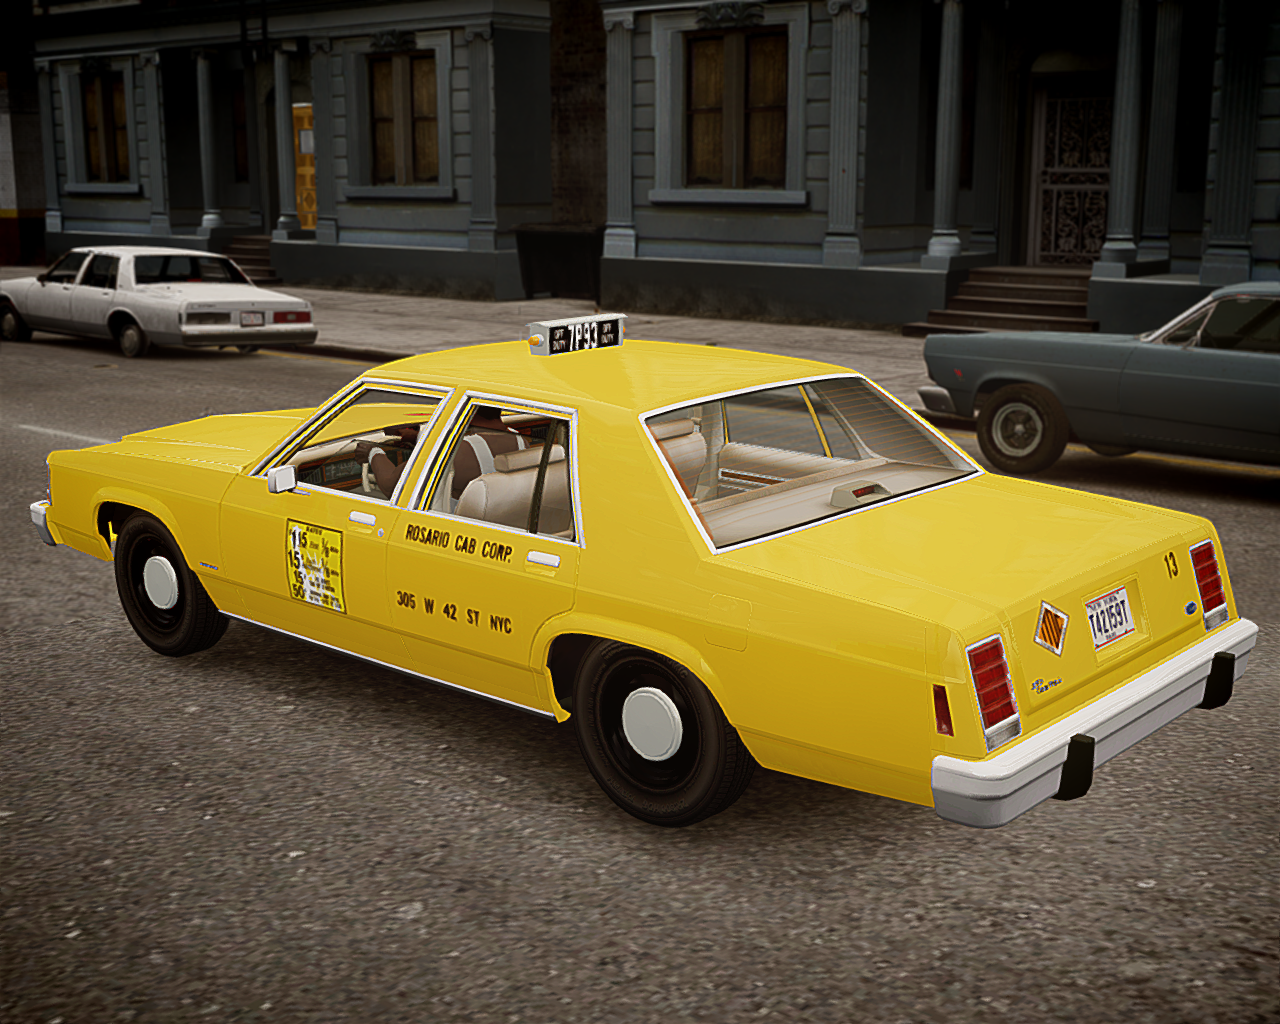 Iv Wip Project Nyc 1980s Vehicles Gtaforums 1980 Ford Crown Victoria Taxi 35352050173 5101190395 O